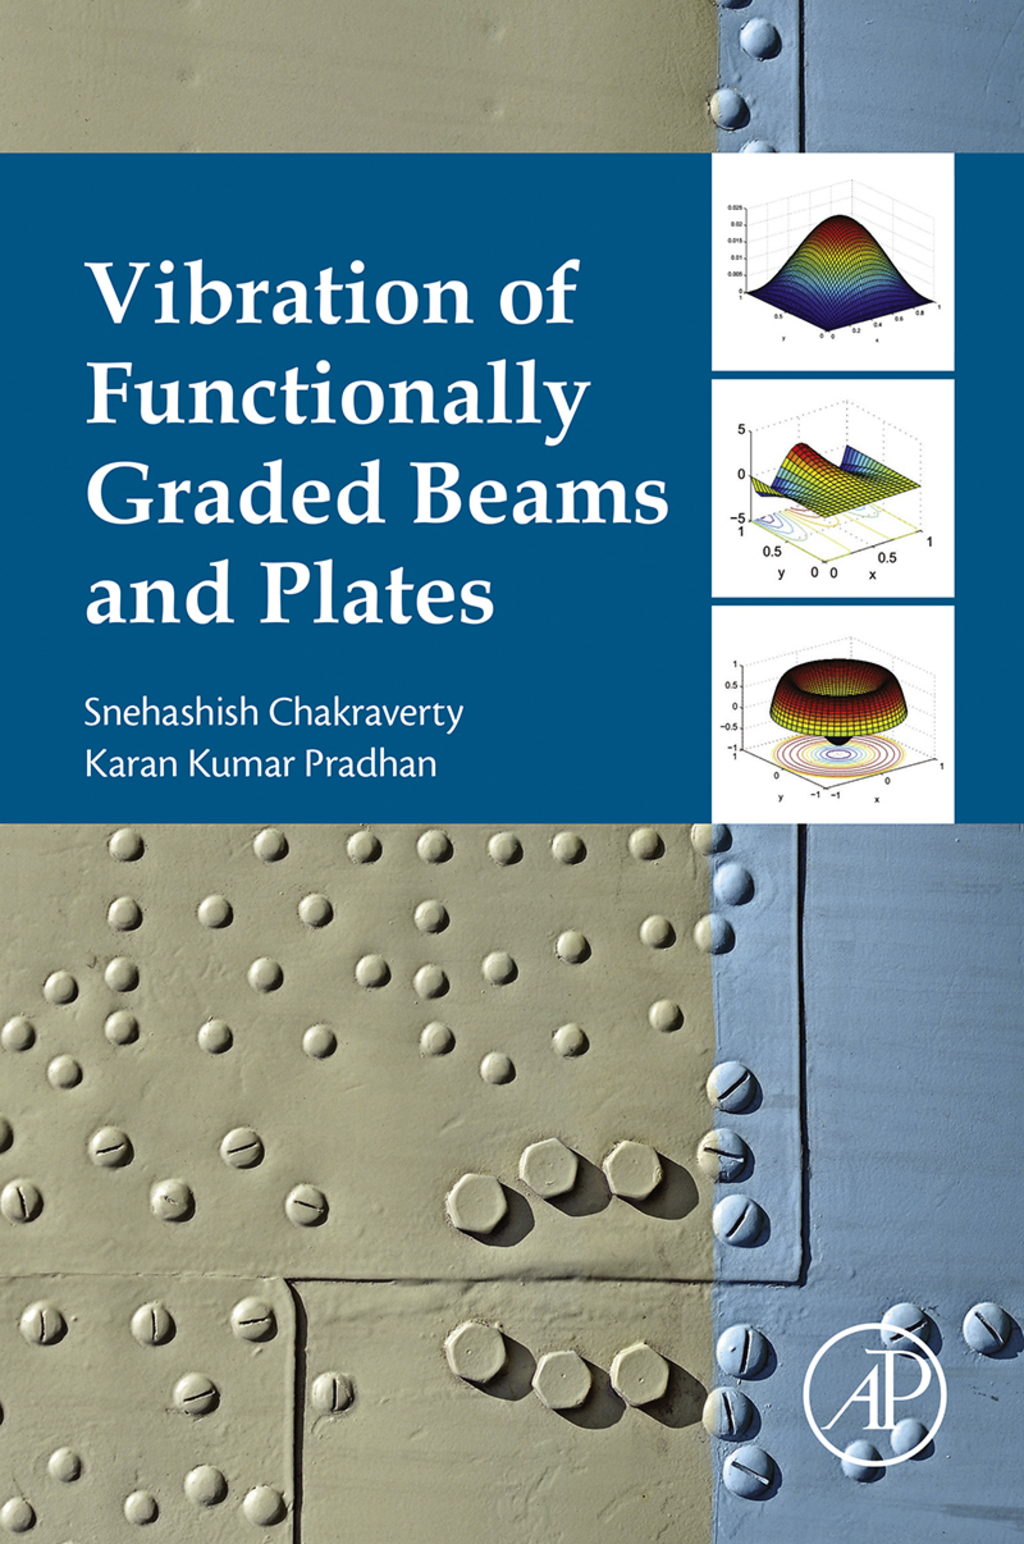 Vibration of Functionally Graded Beams and Plates (ebook) eBooks